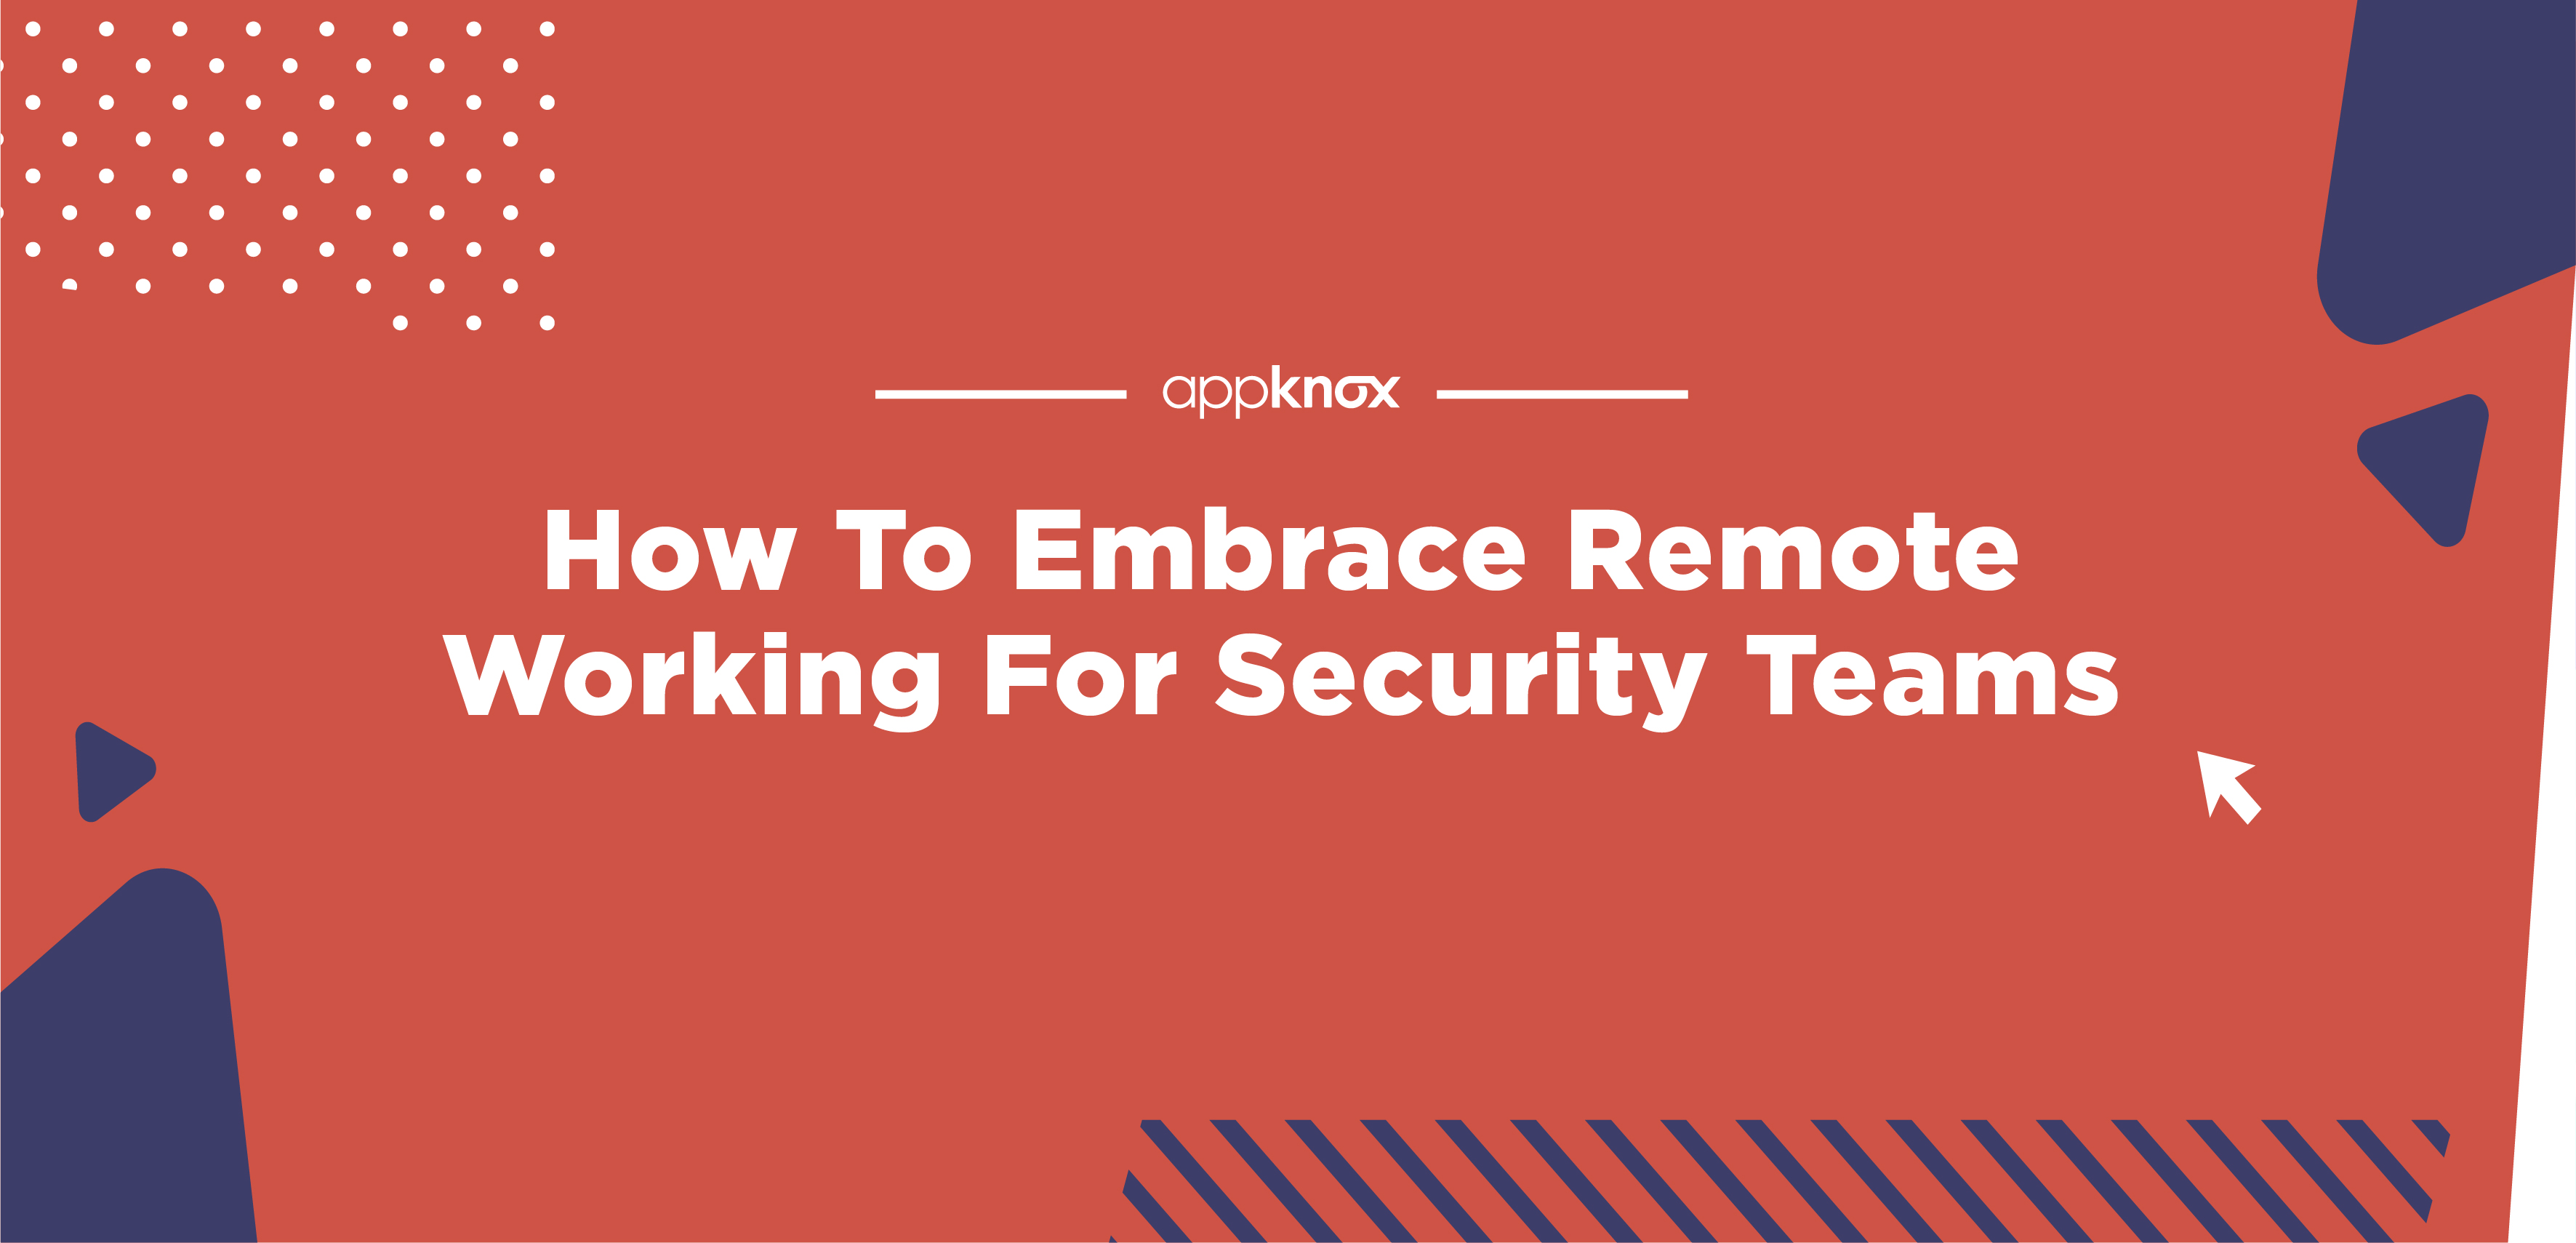 How To Embrace Remote Working For Security Teams